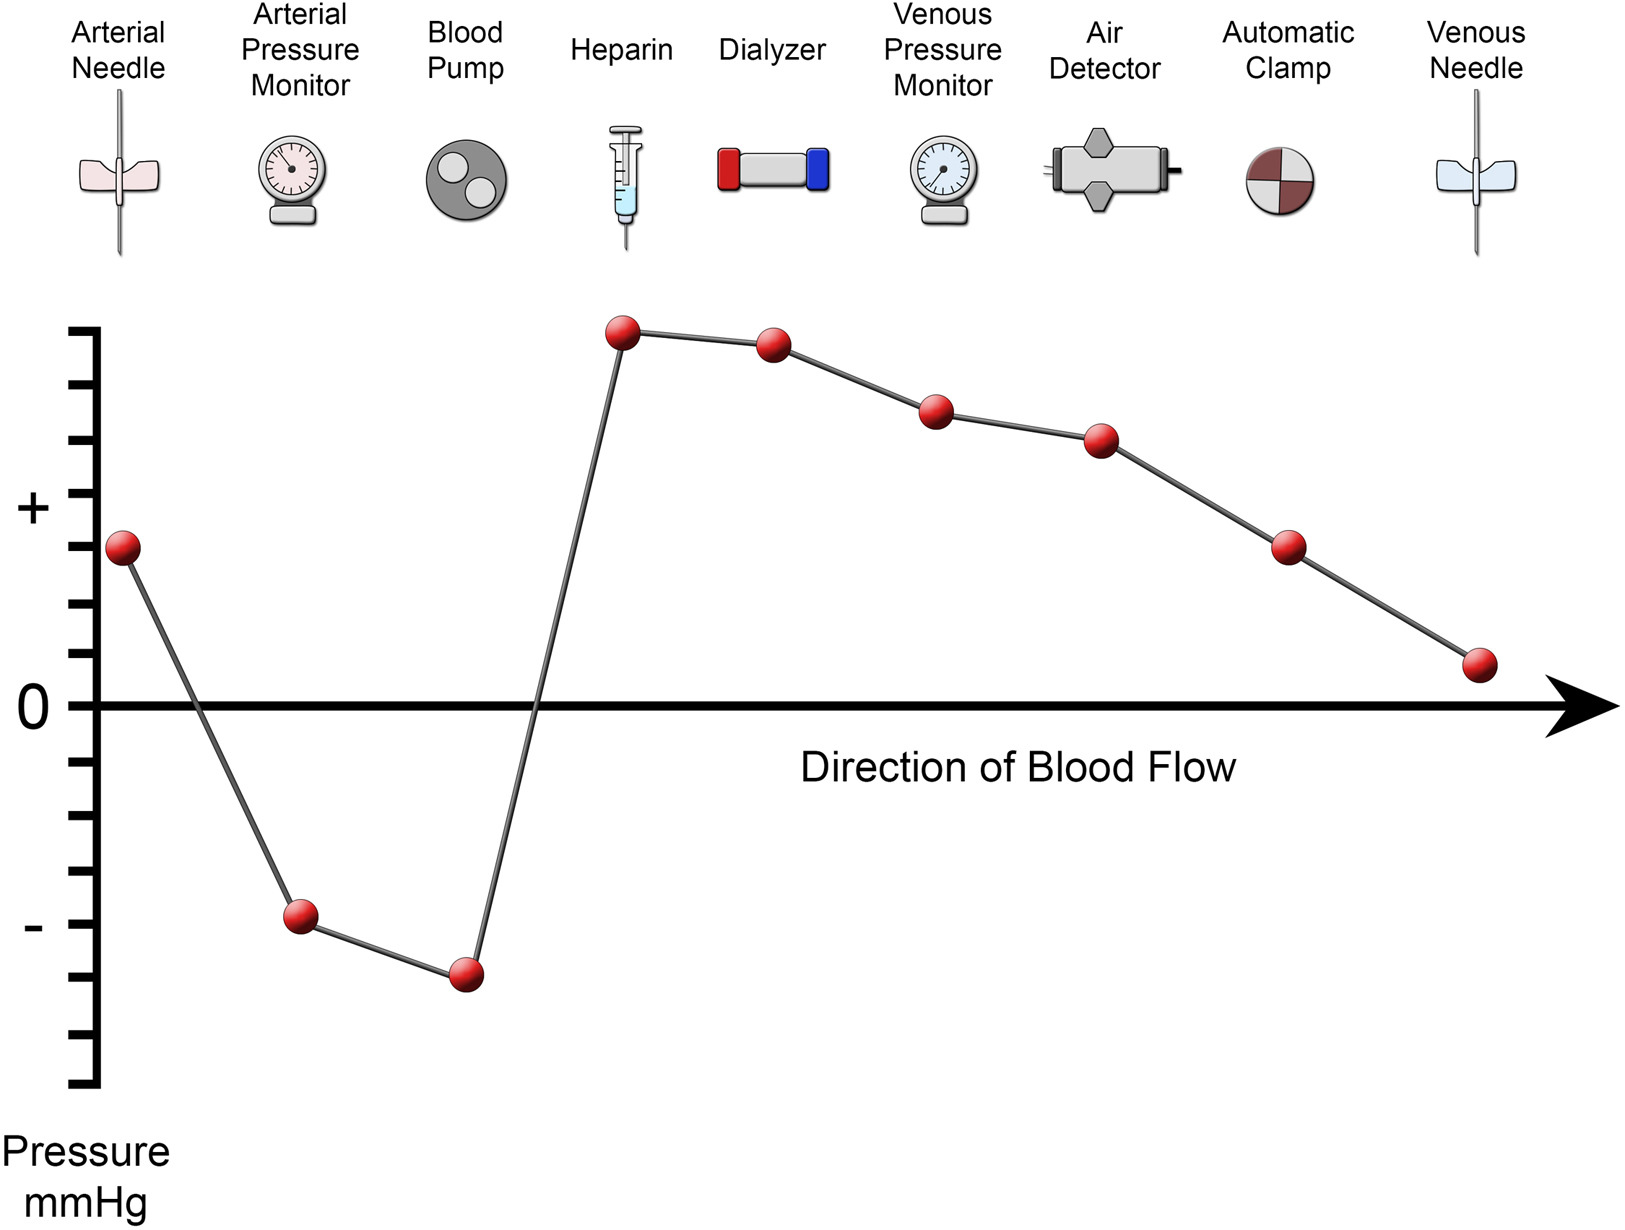 A Primer On Hemodialysis From An Interventional Radiology